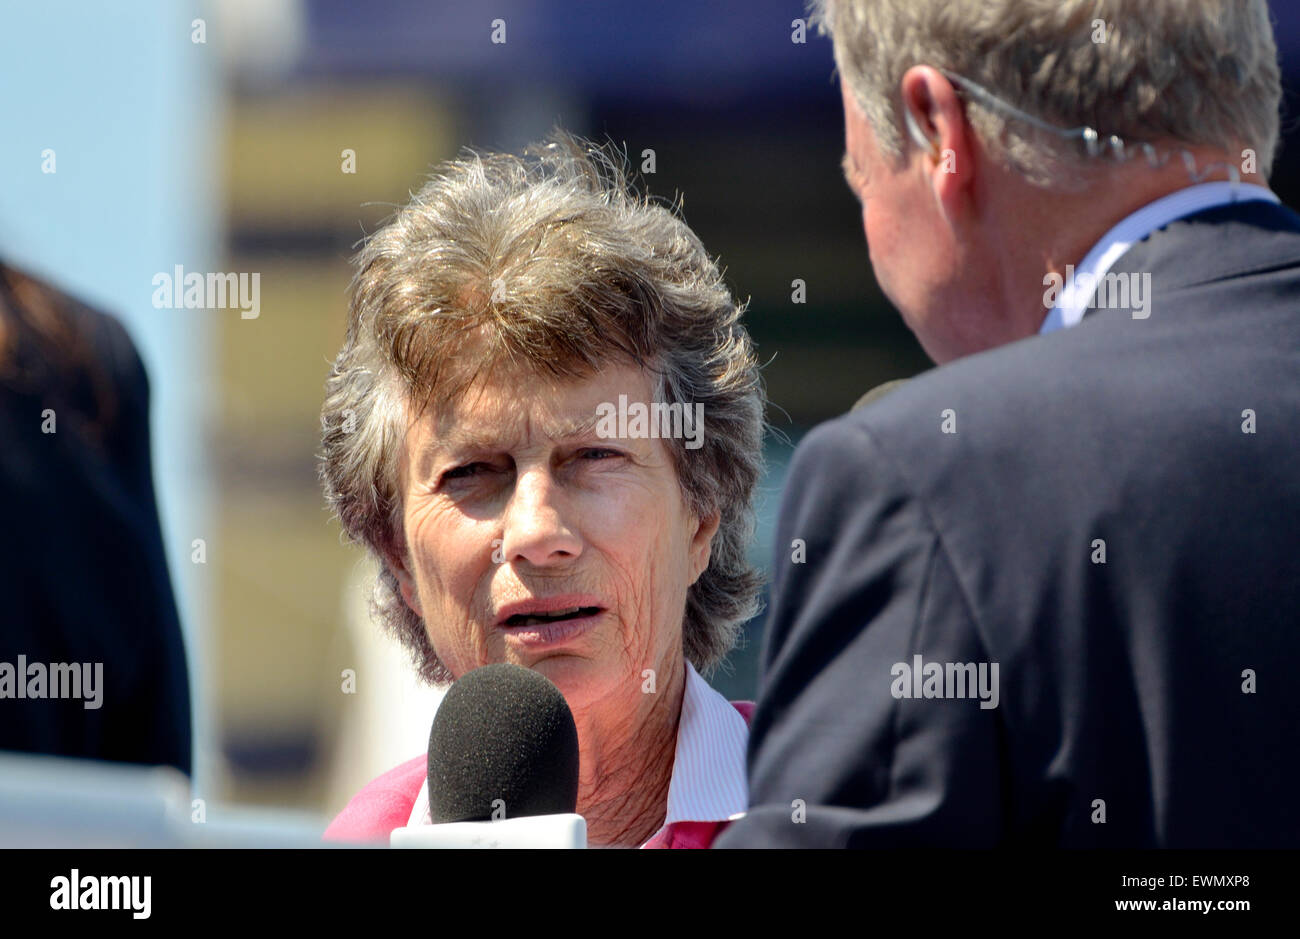 Virginia Wade former British No 1 la s tennis player doing a